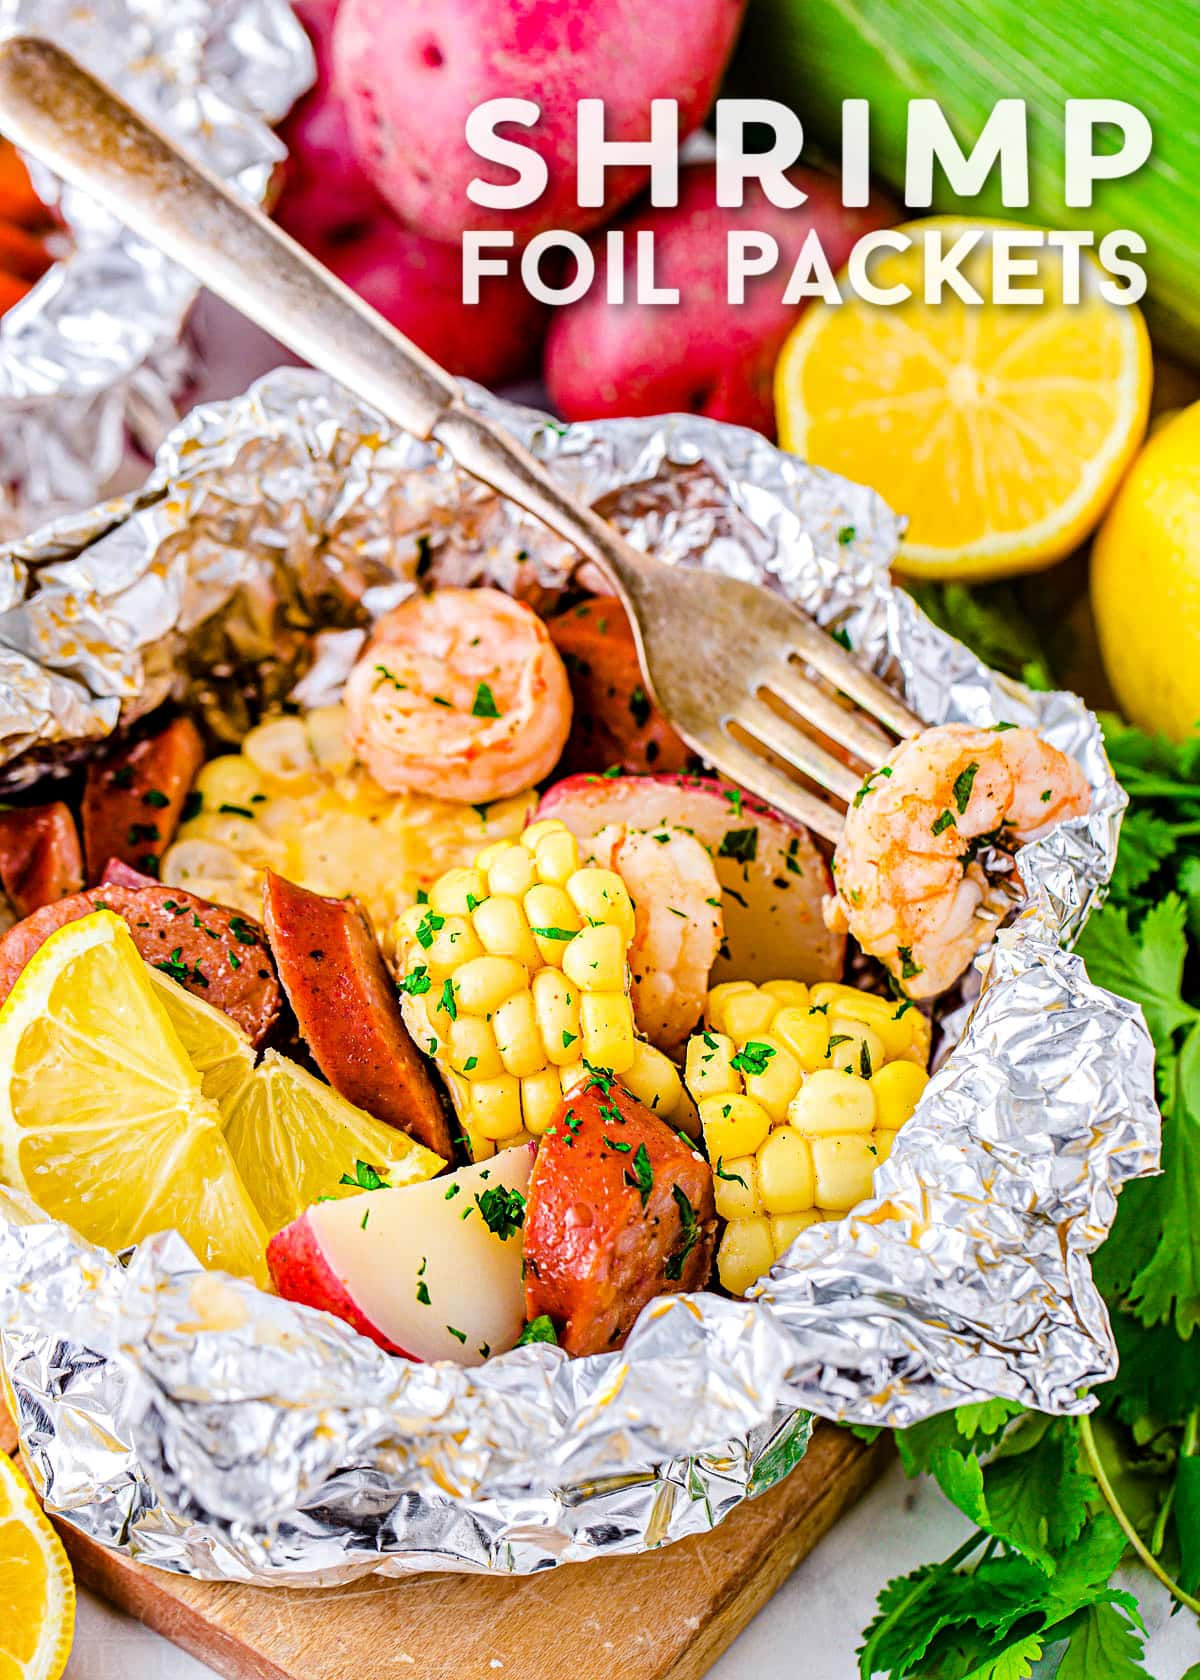 shrimp boil cooked in foil with corn, sausage, shrimp and potatoes. Title overlay at top of image.